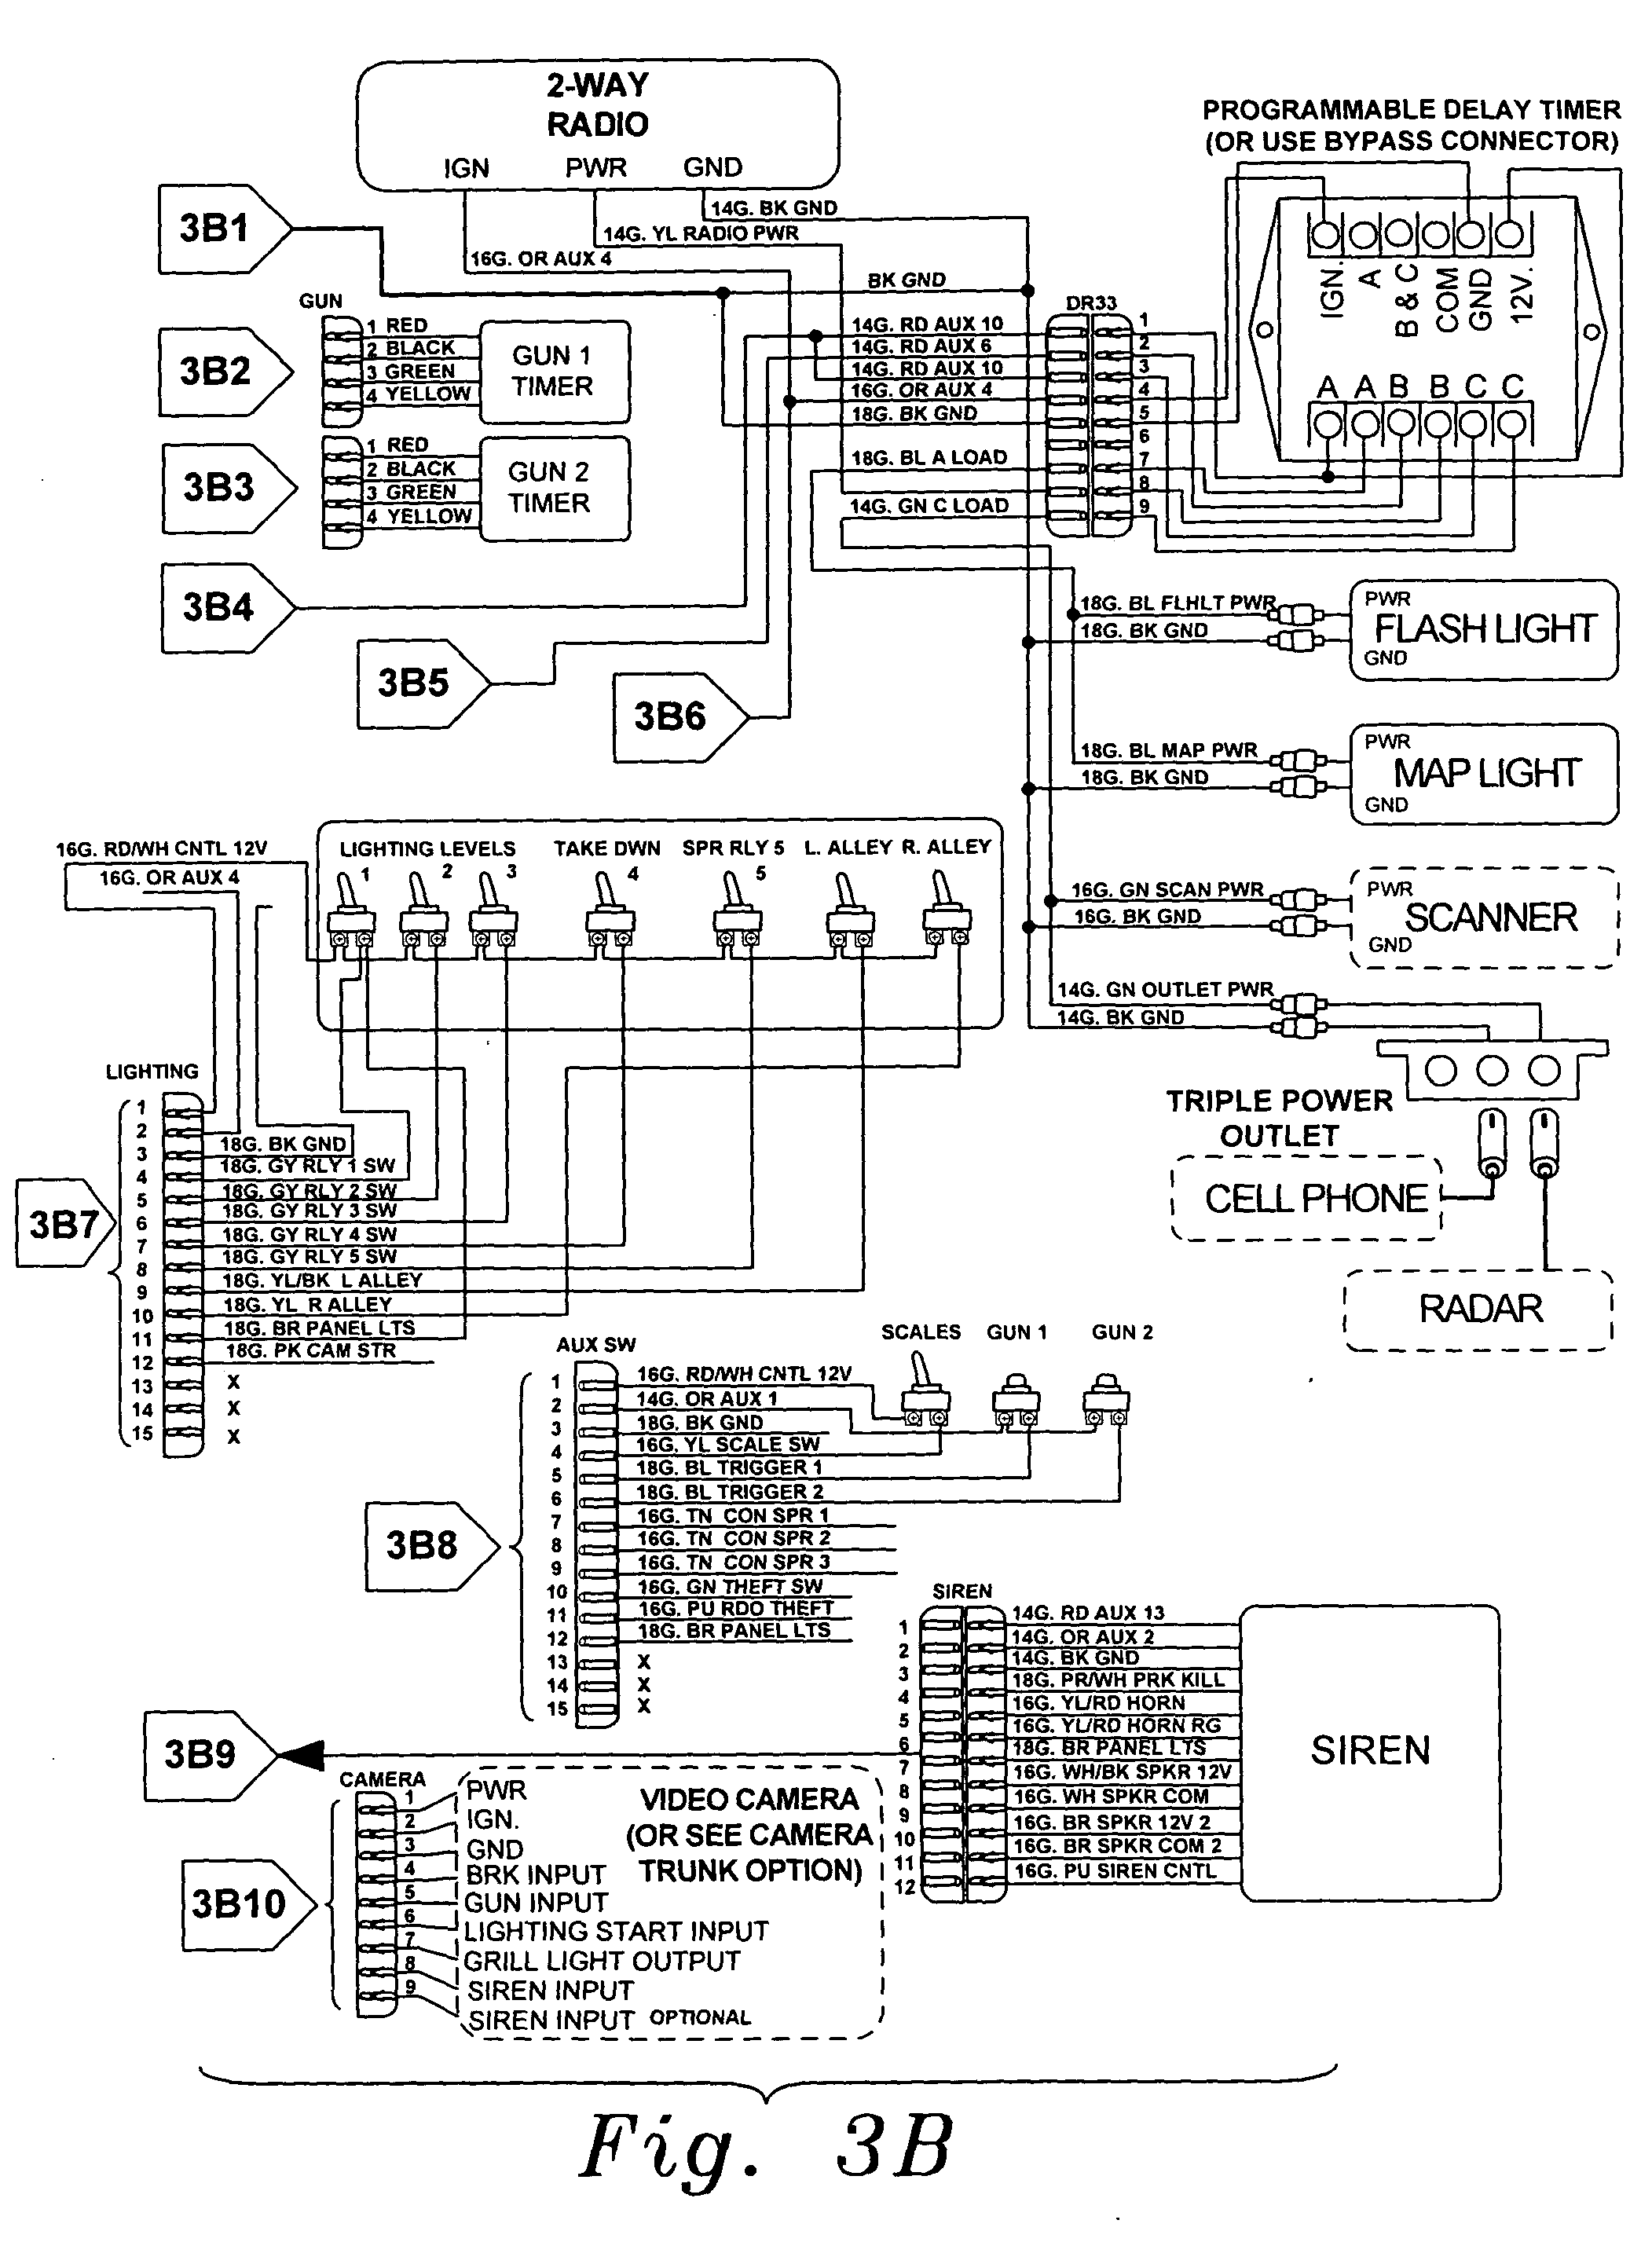 Whelen Edge 9000 Wiring Diagram : Whelen inner edge wiring diagram